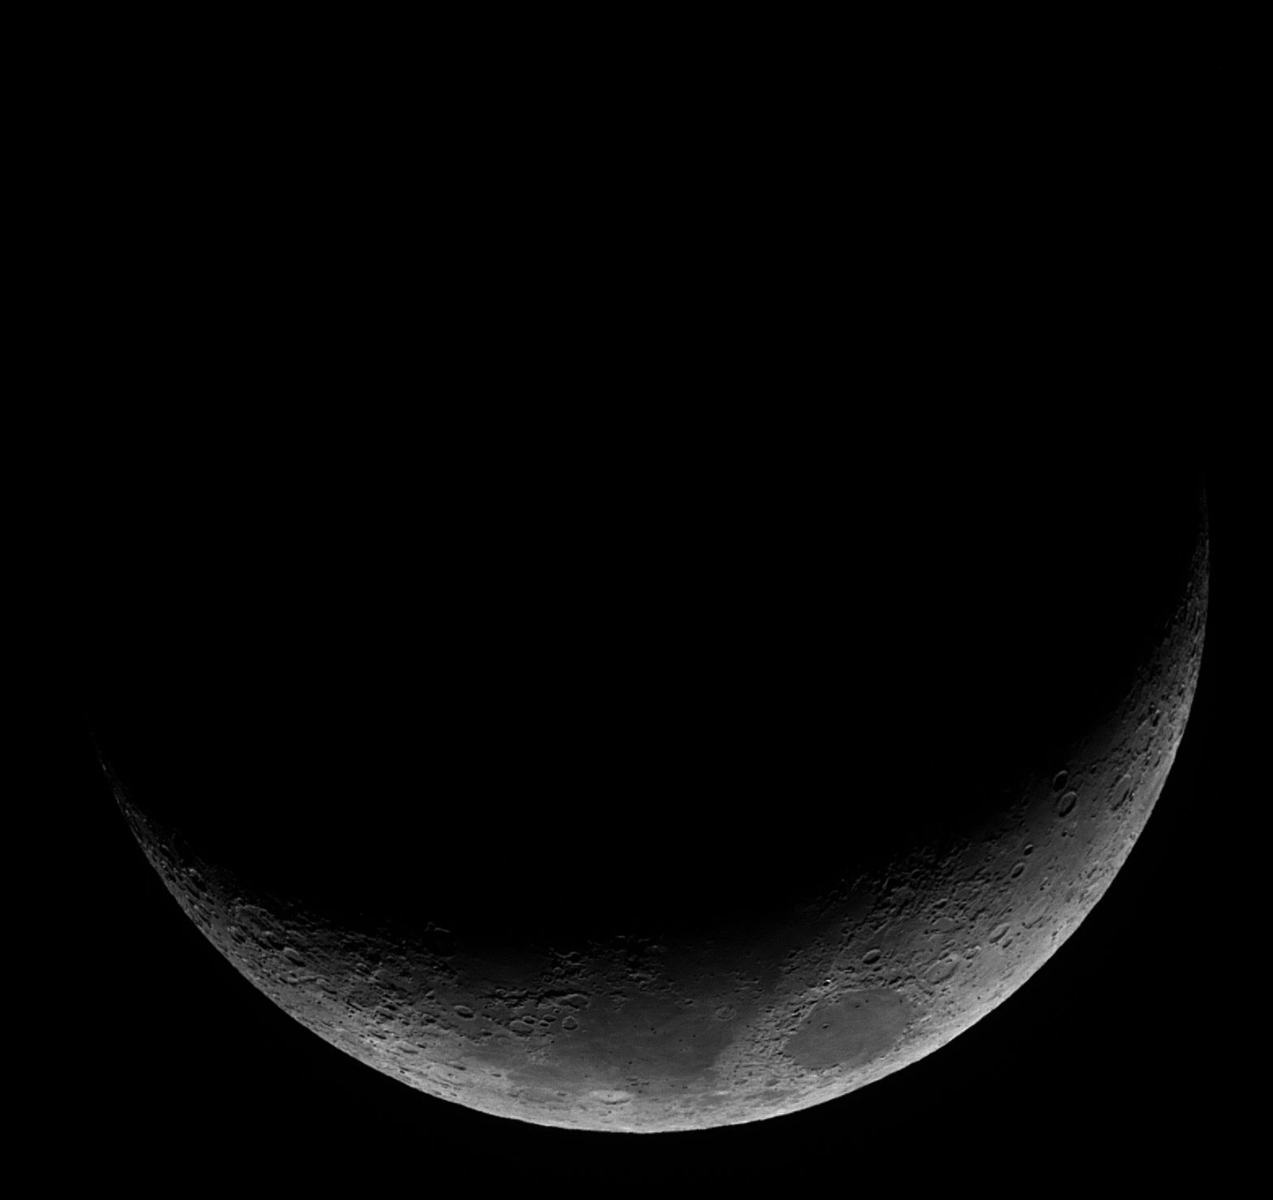 Waxing Crescent Moon 10 March 2019